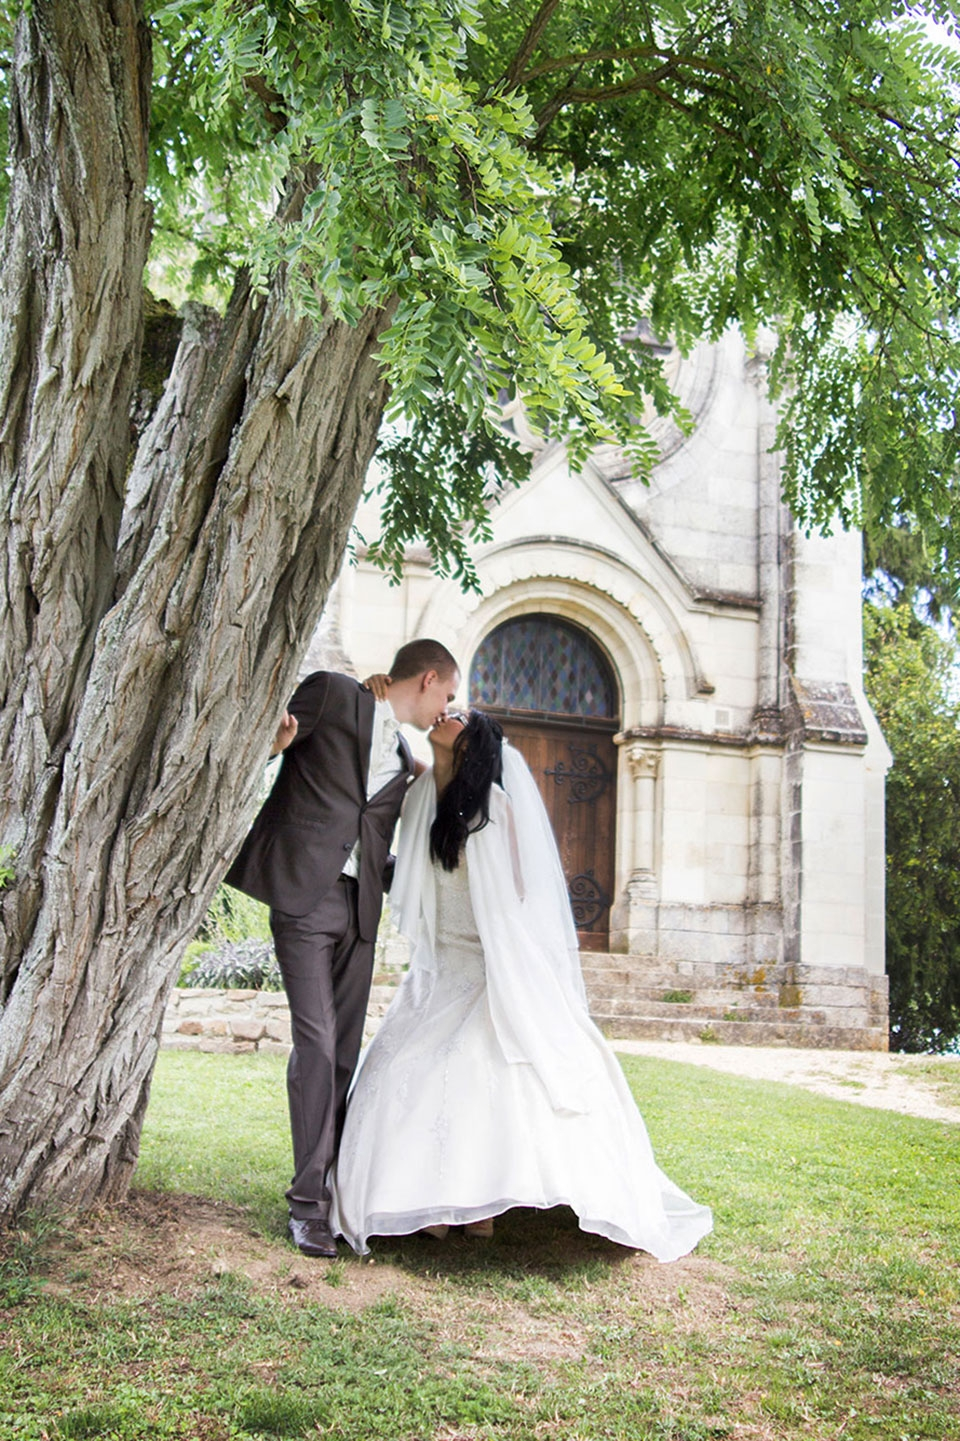 particuliers-mariages-oui-mayingcyril-18